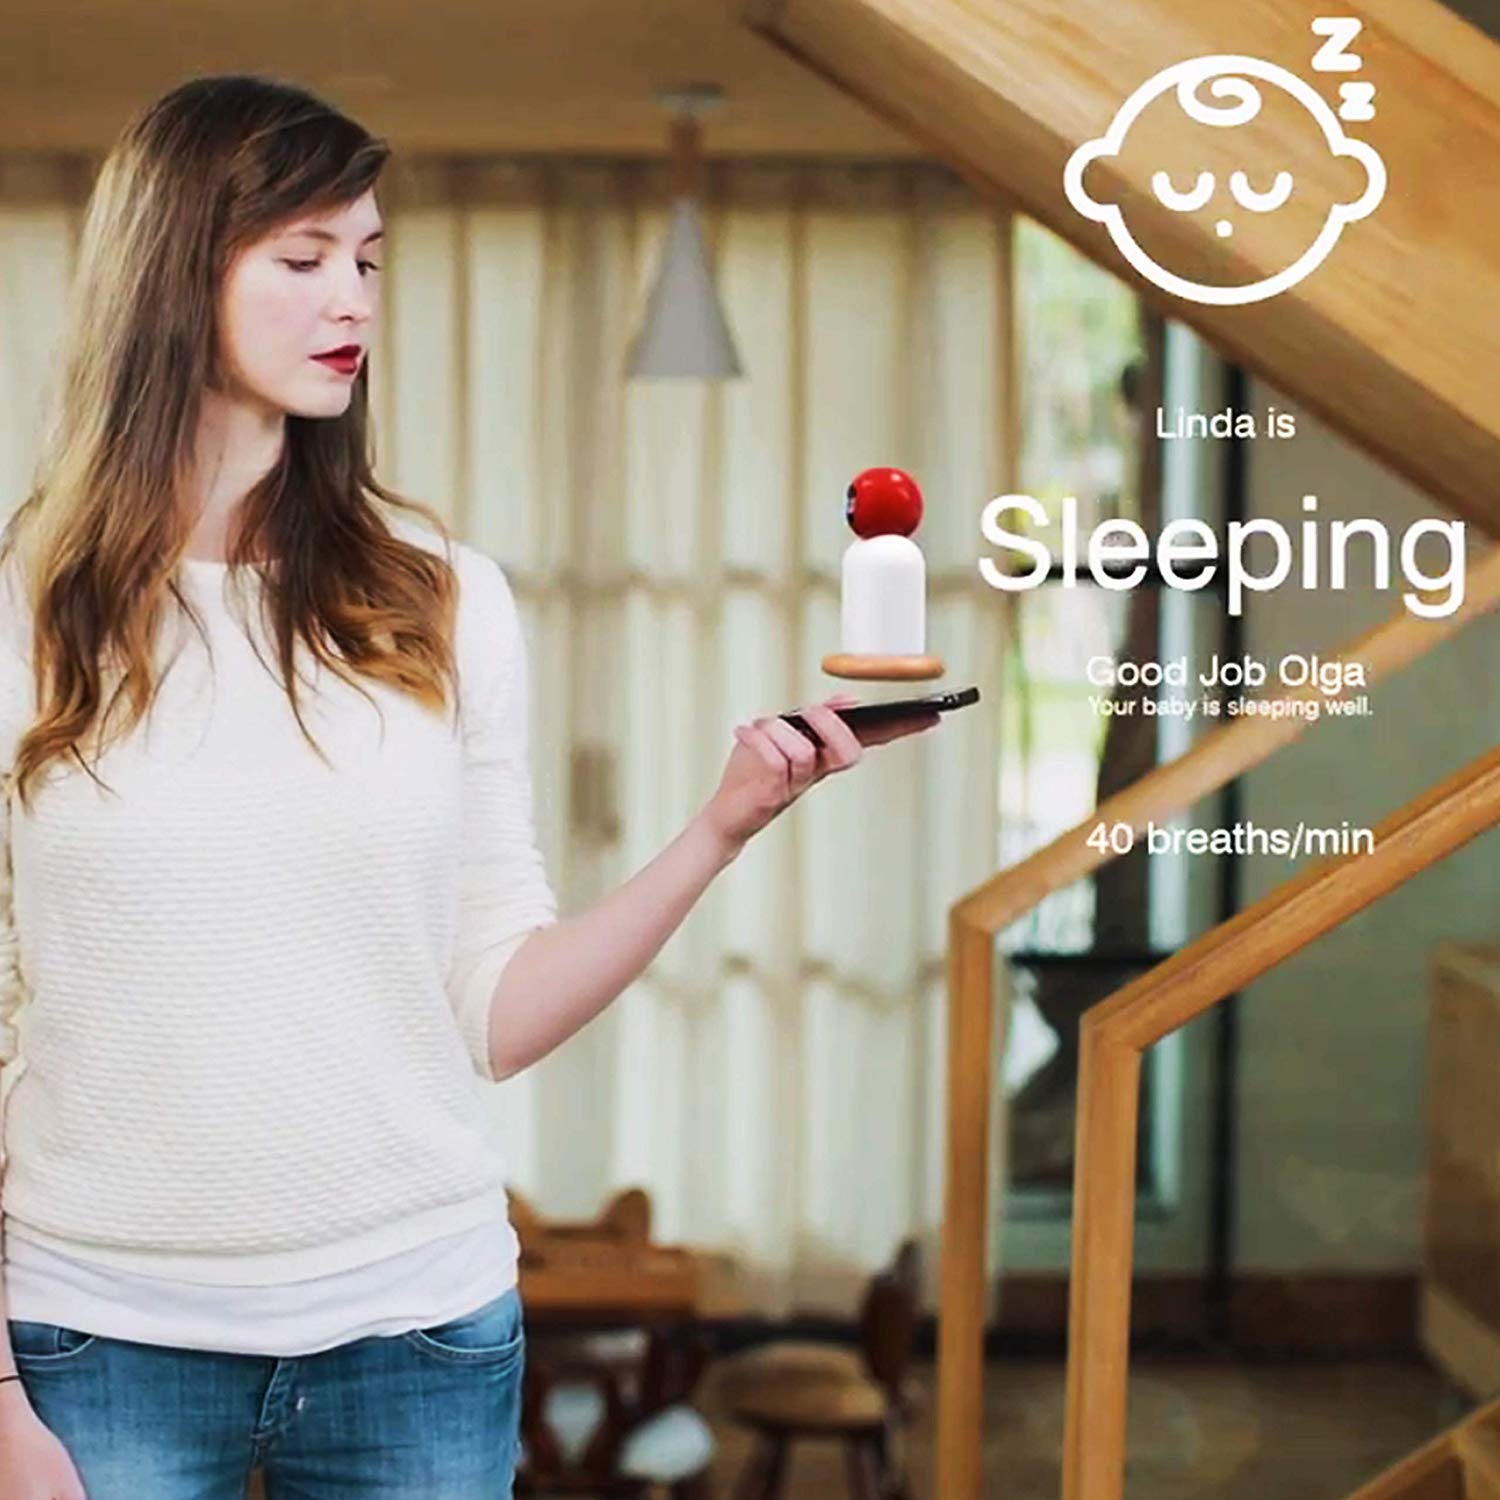 raybaby – Best Baby Monitor Tracks Sleep and Breathing